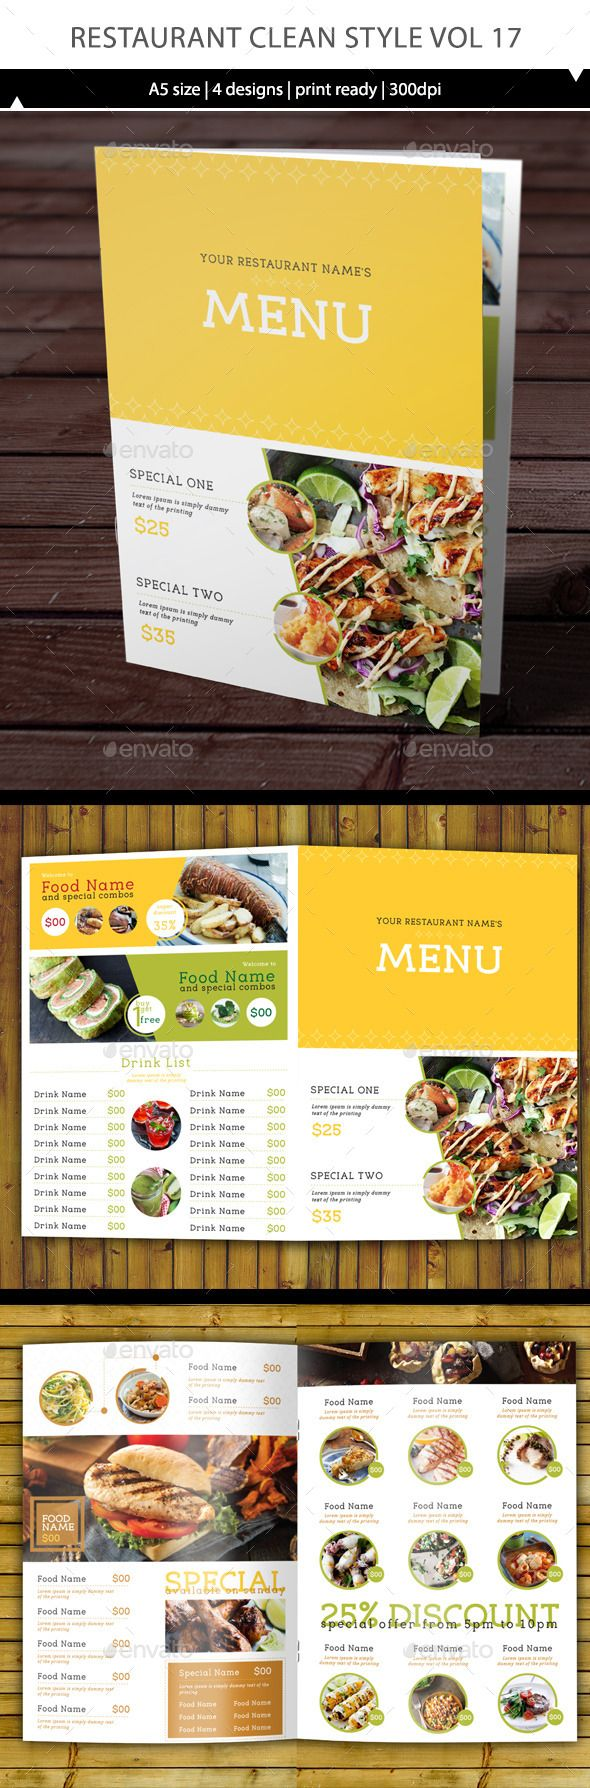 Restaurant Menu Vol 17 | Menu, Menu templates and Restaurant menu ...